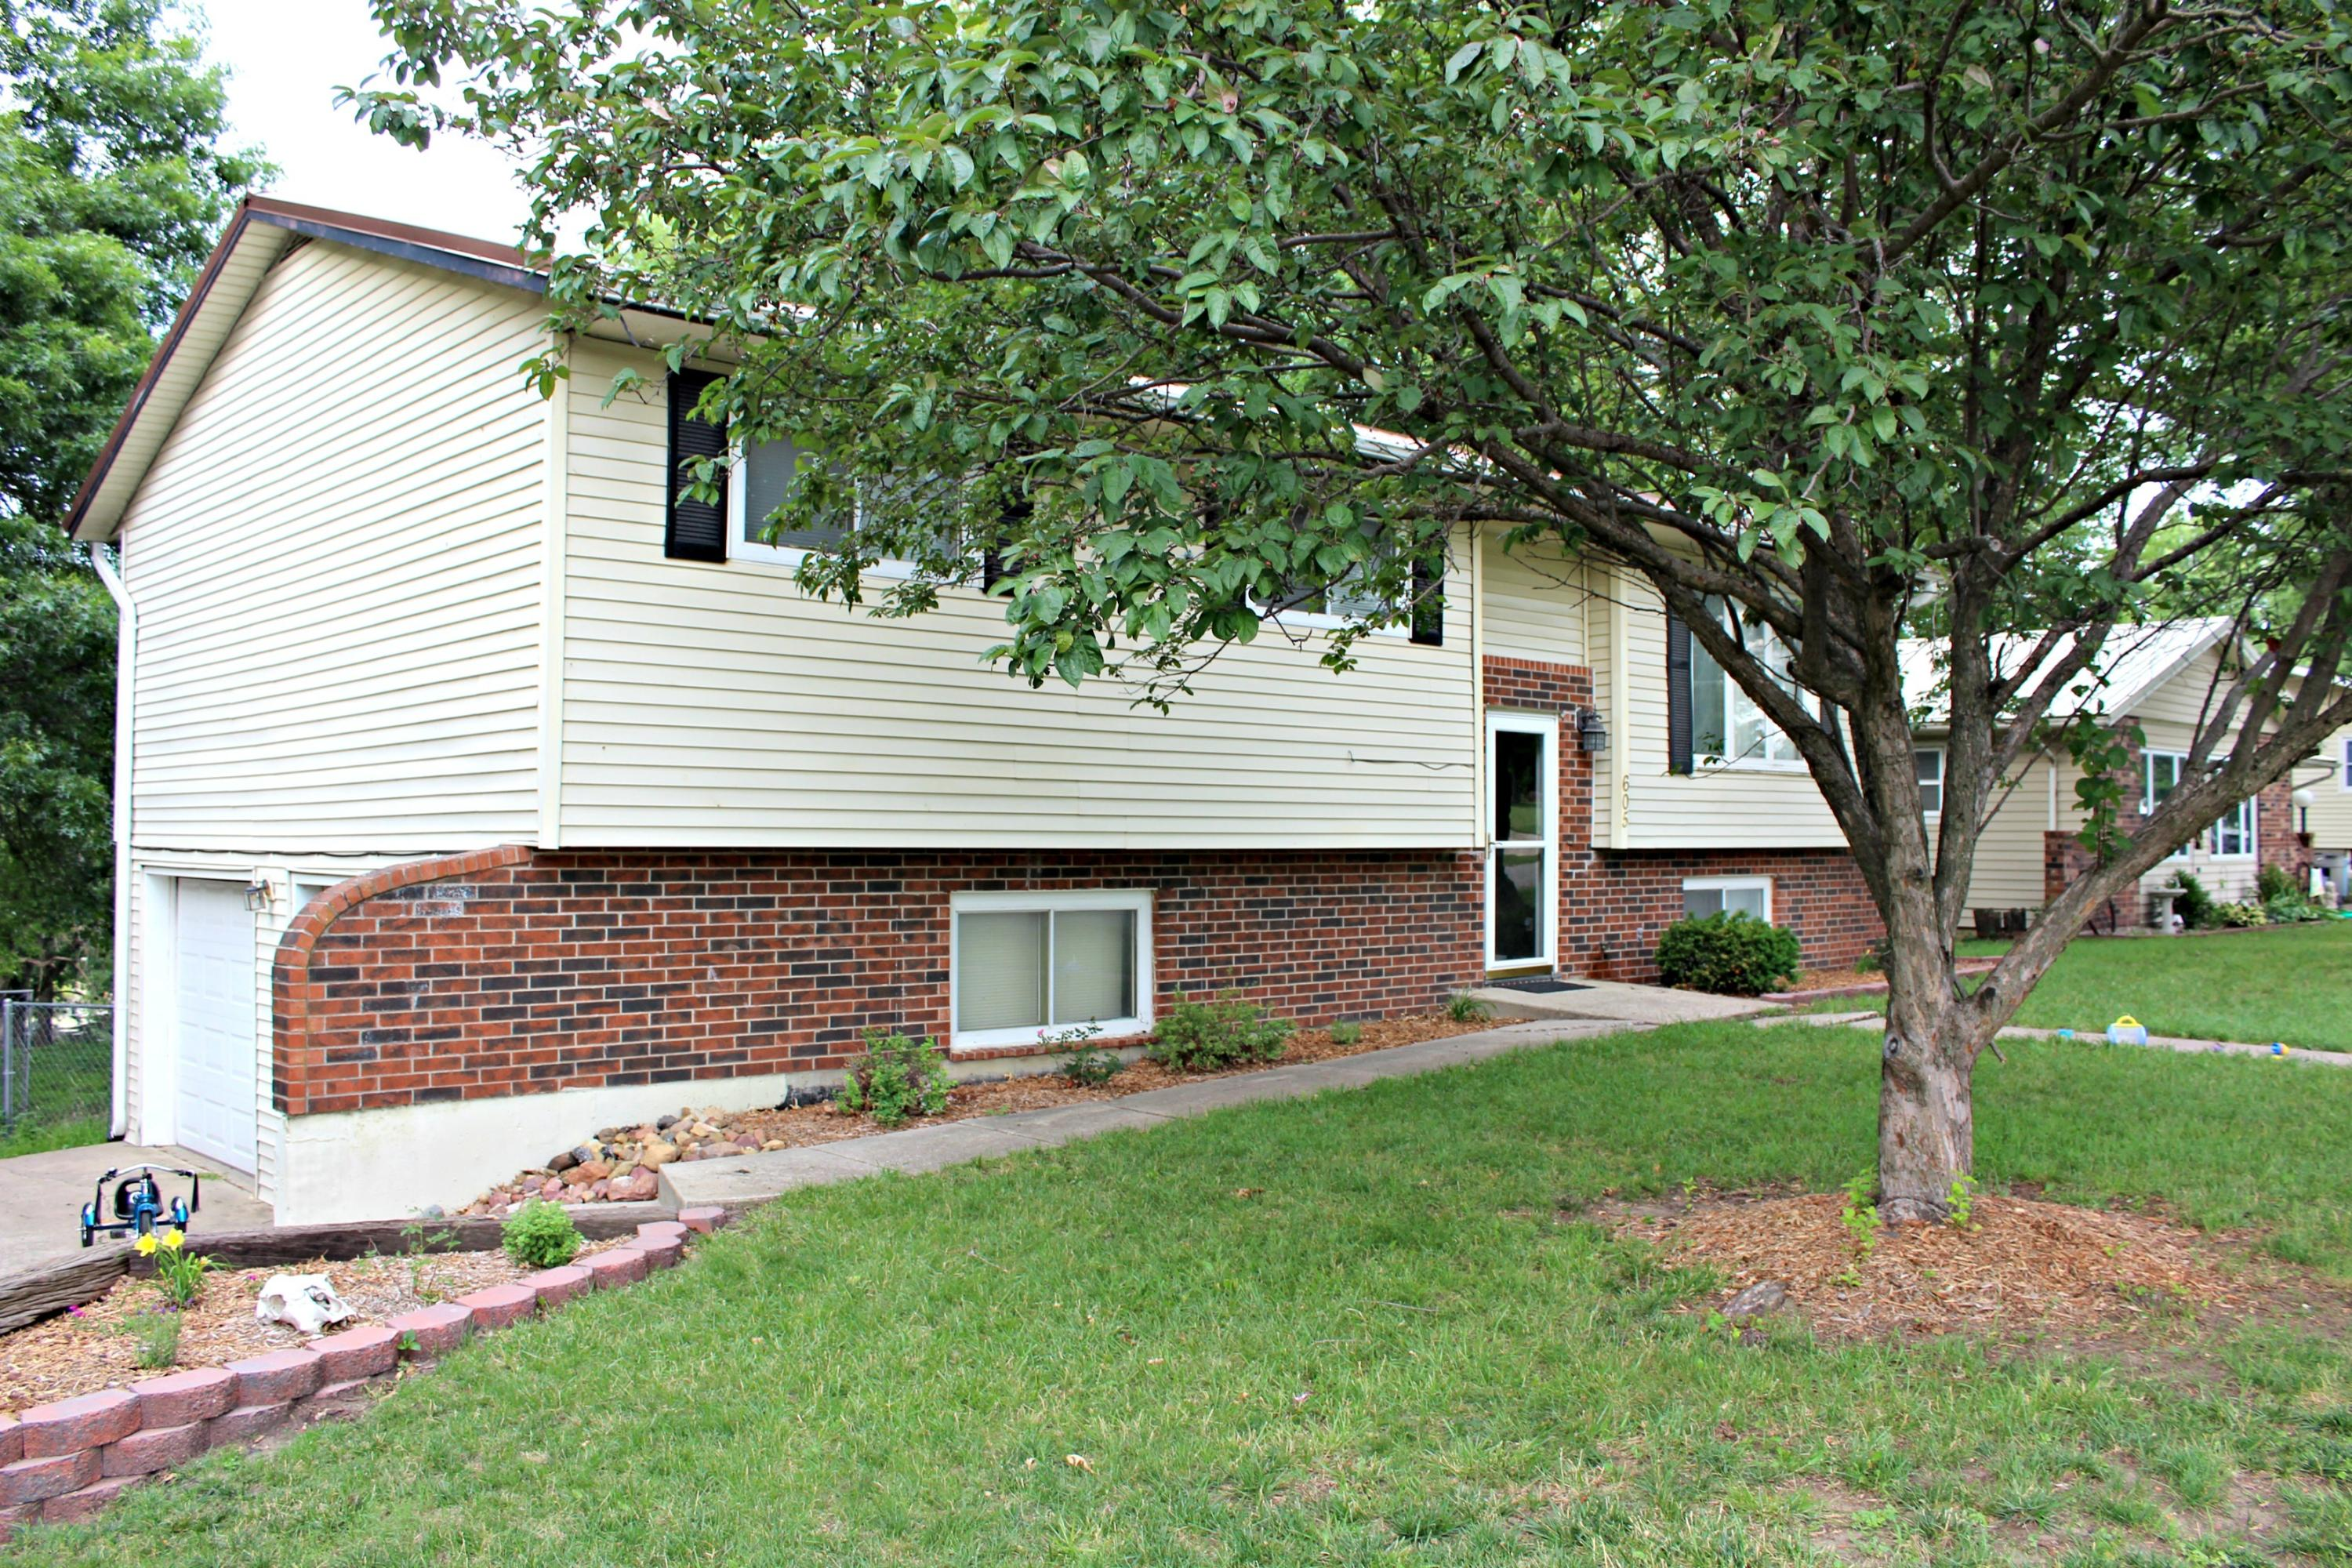 605 E 14TH Street, Maryville, Missouri 64468, 3 Bedrooms Bedrooms, ,2 BathroomsBathrooms,Residential,14TH,4789